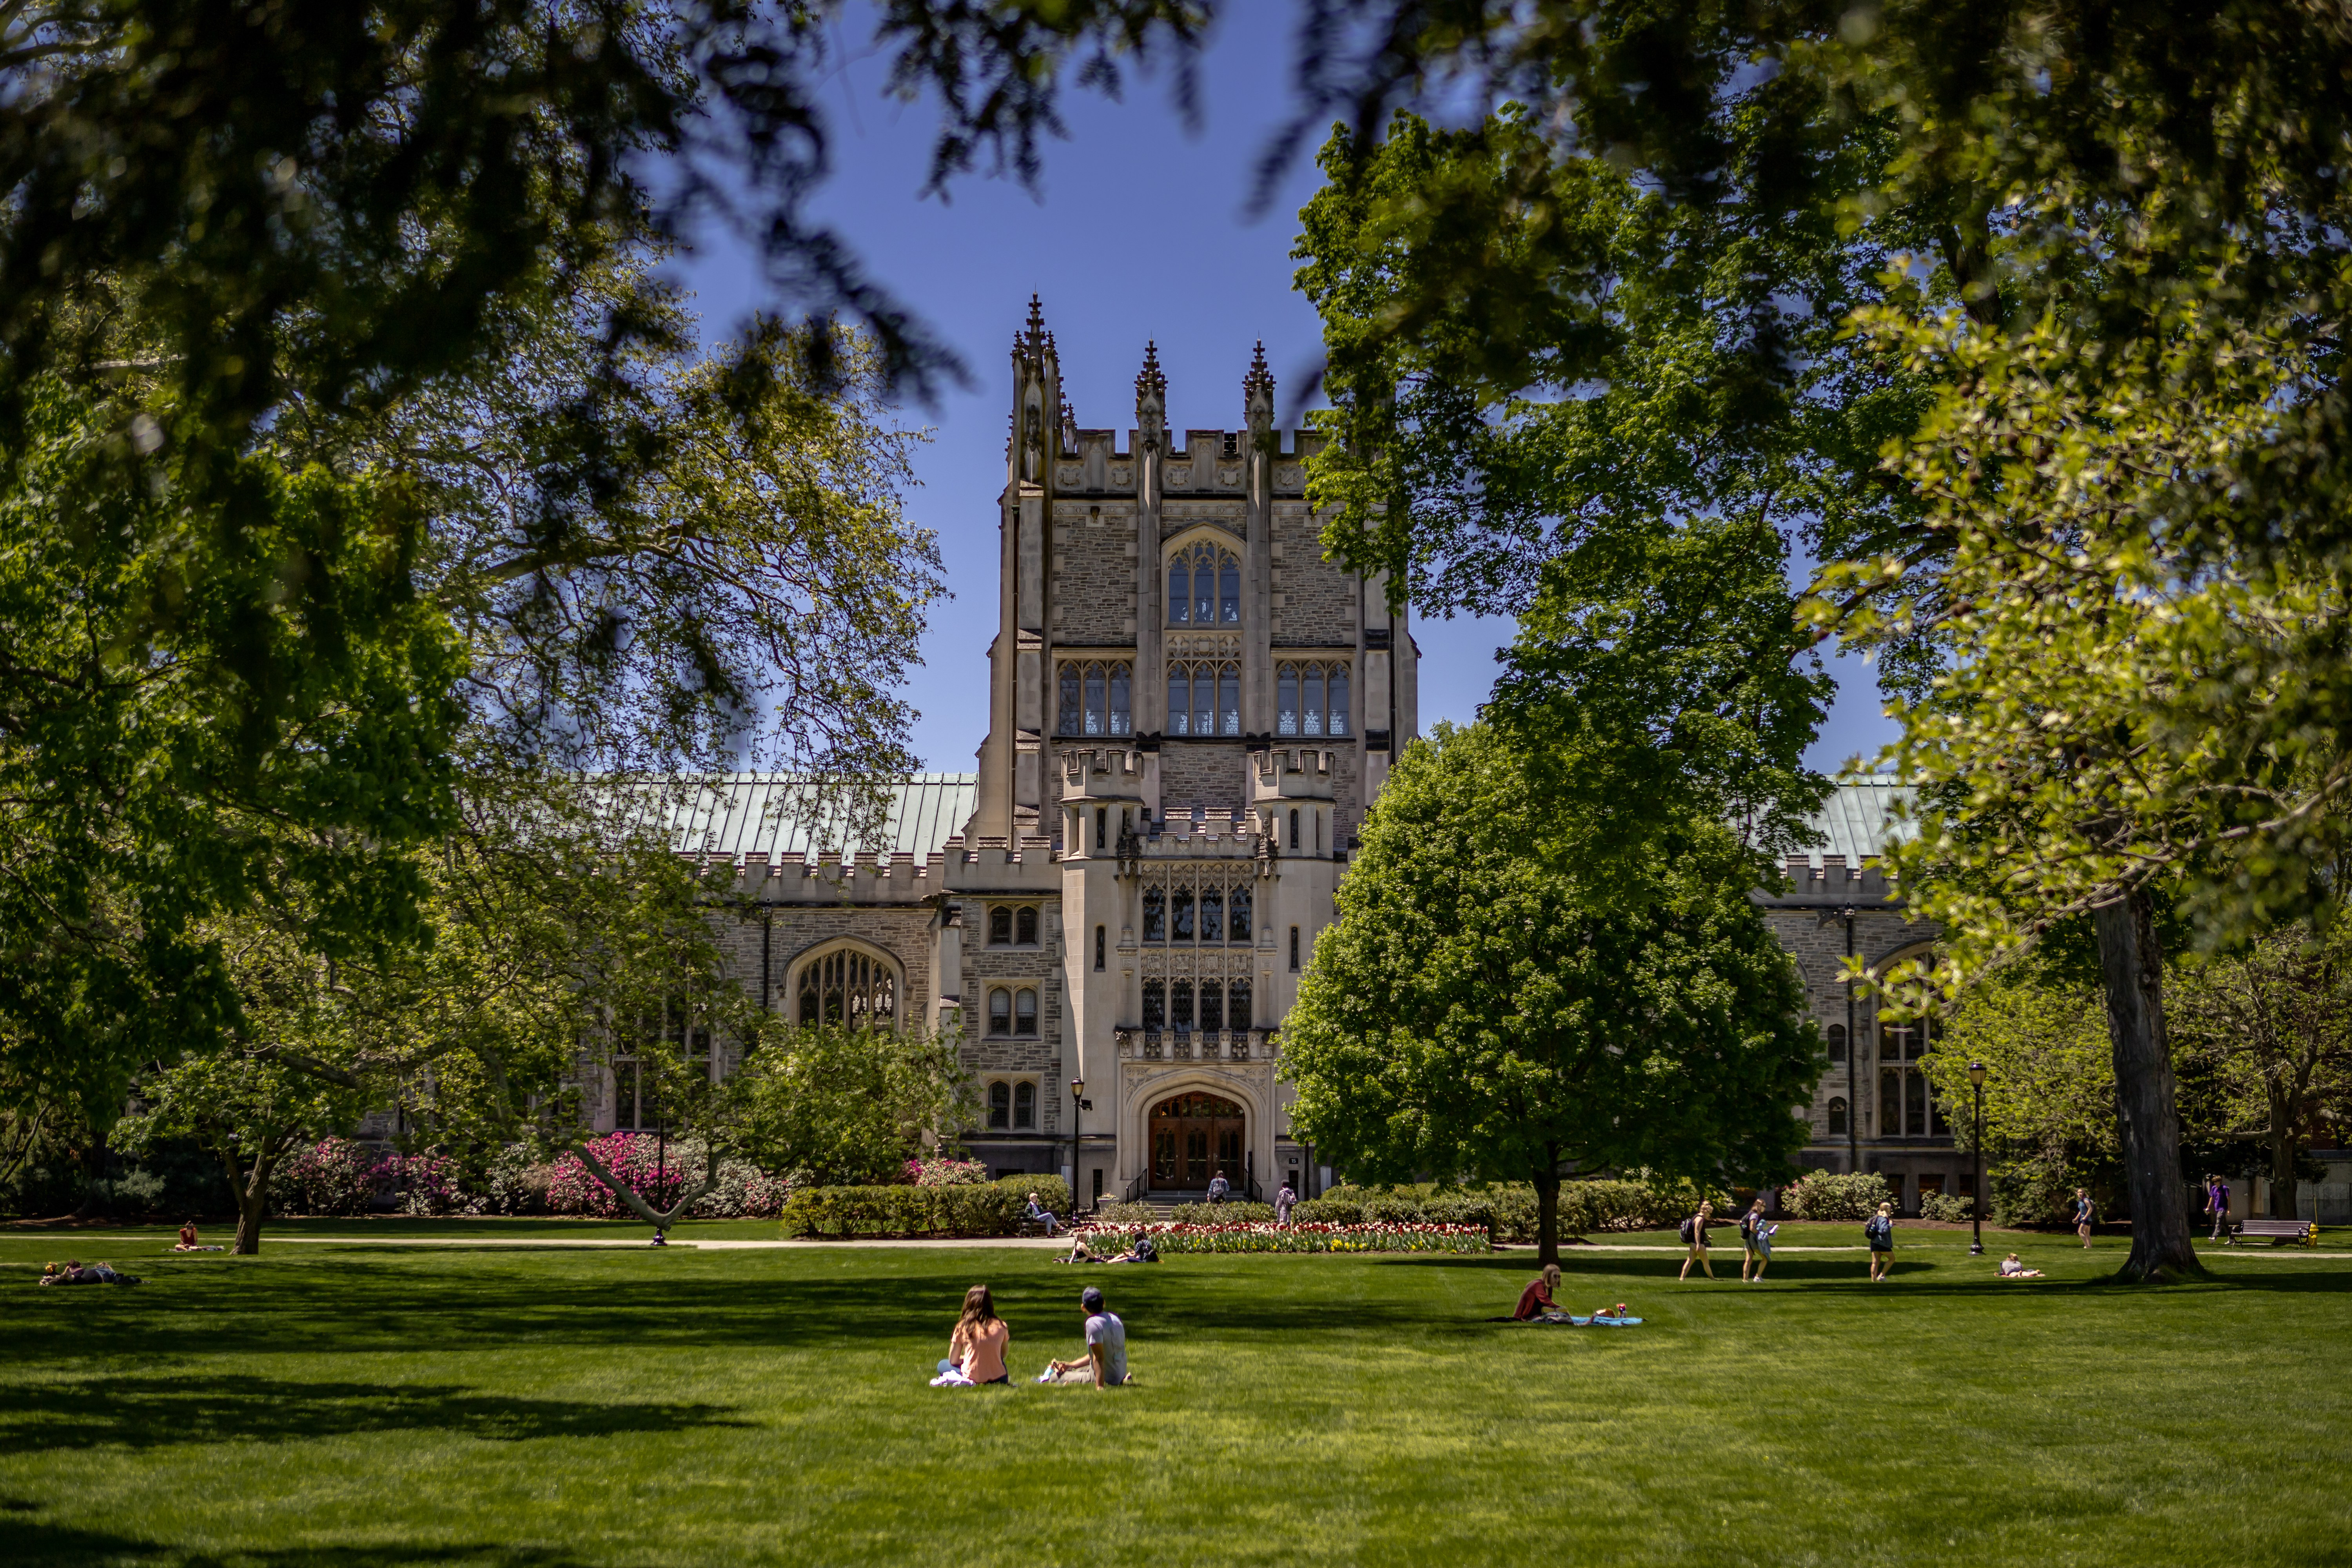 Vassar College in Poughkeepsie NY, located just ten minutes from Sleight Farm at LaGrange